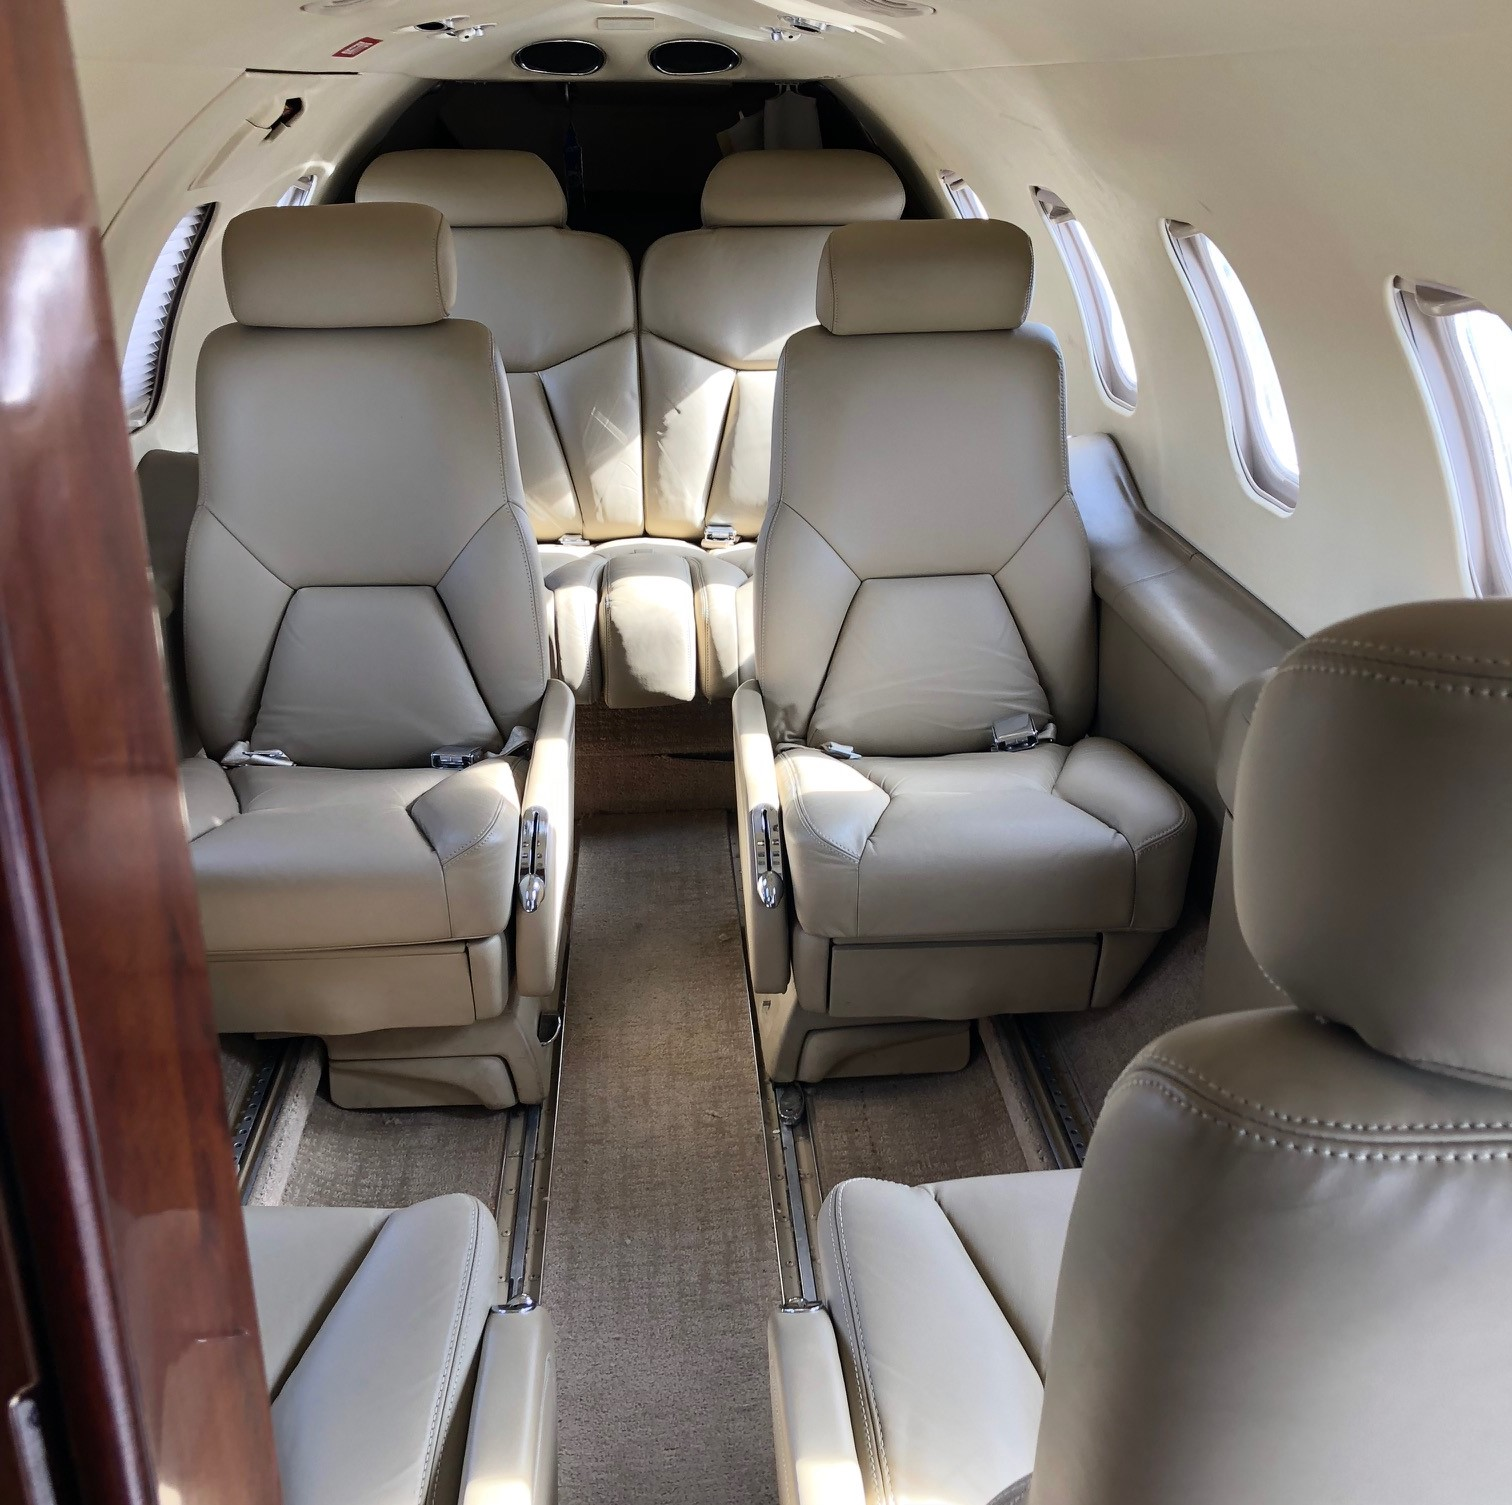 Learjet 31A interior